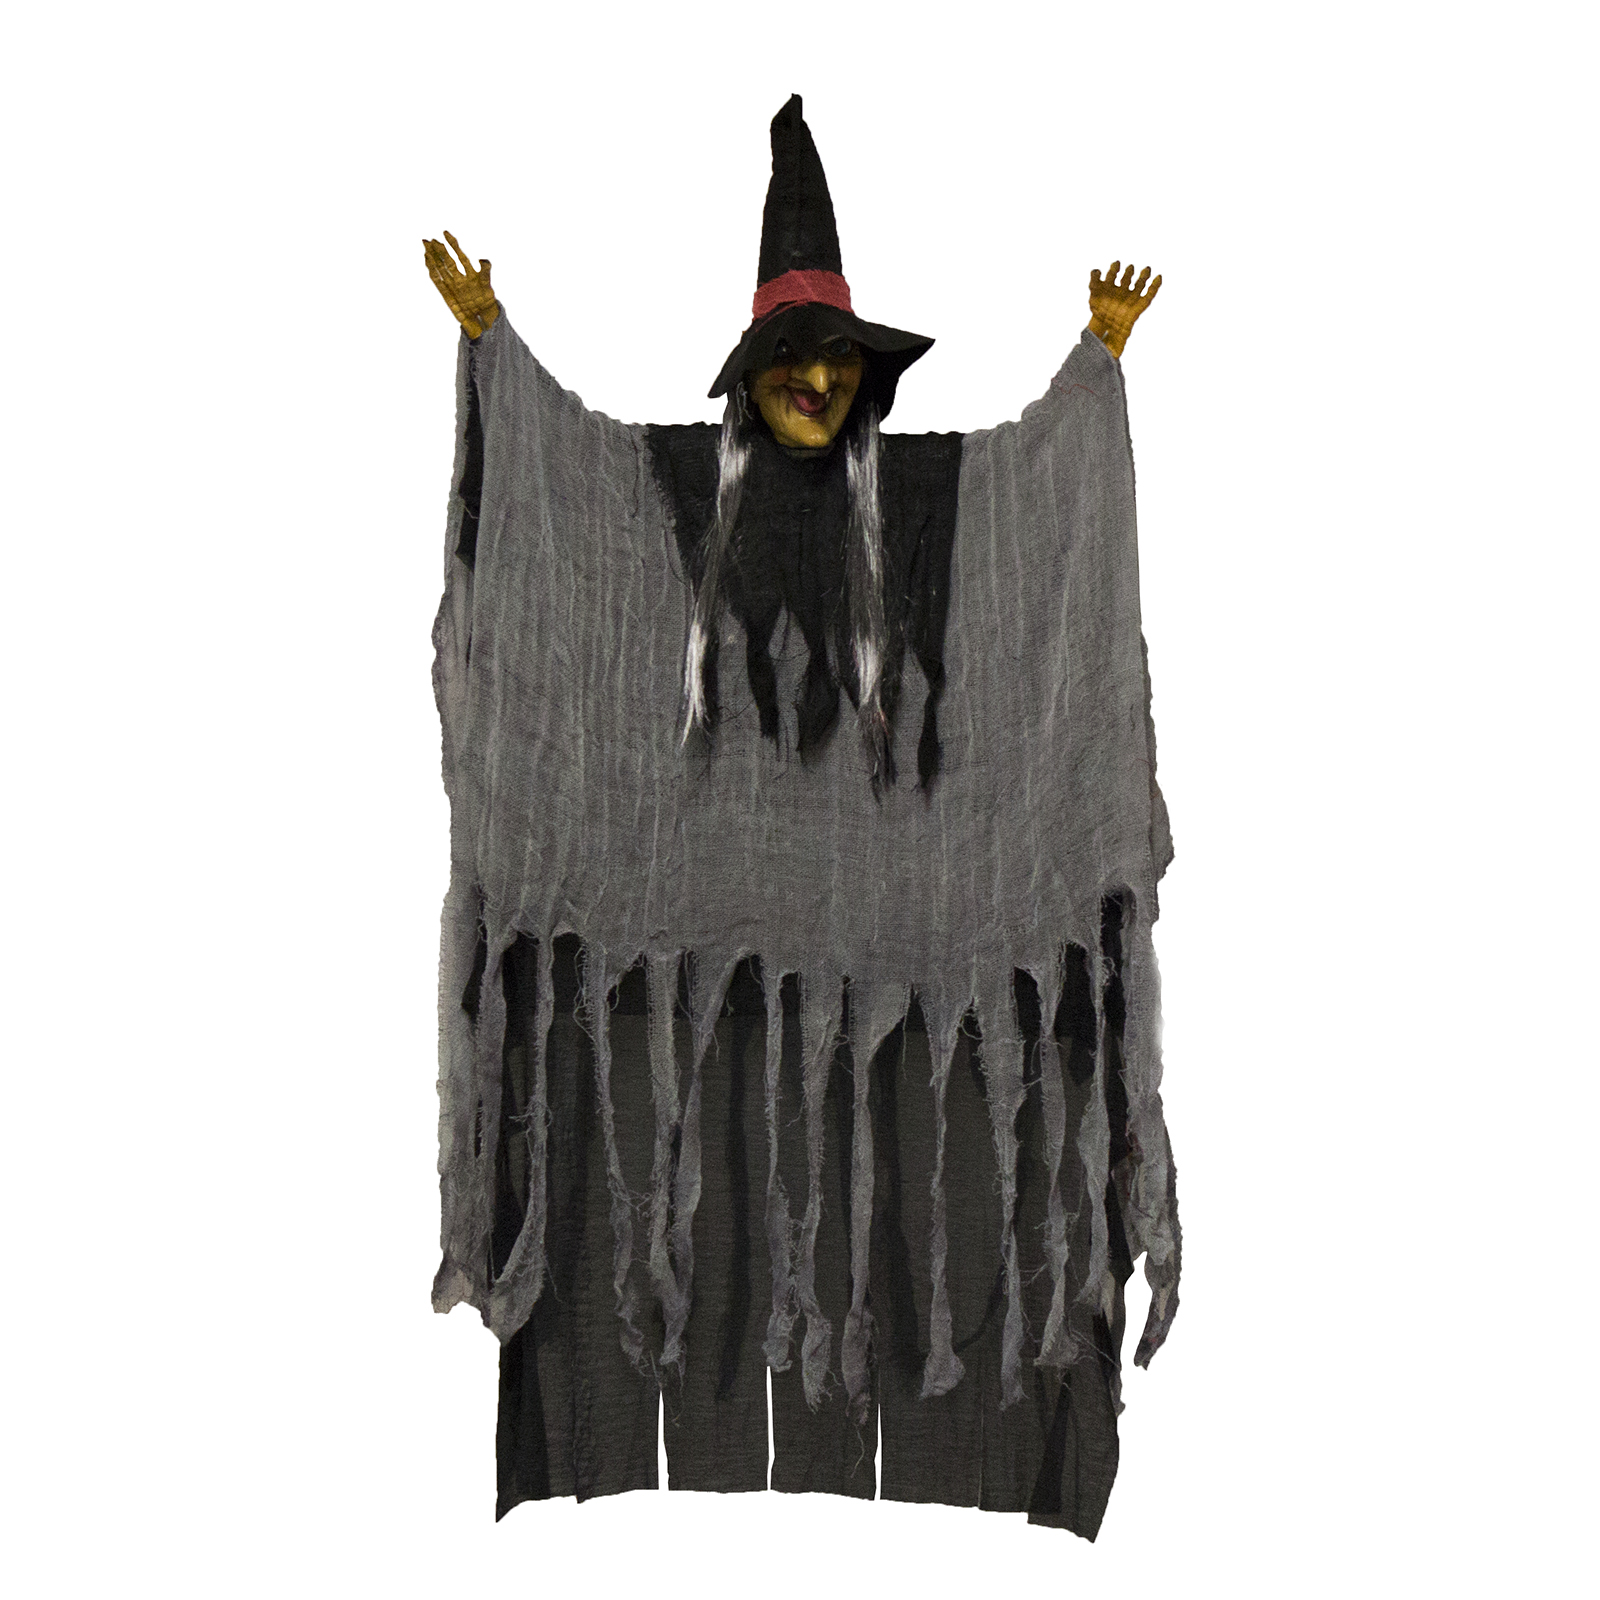 Scary Flashing Howling Light up LED Hanging Witch Figure - Scary Witch Decorations